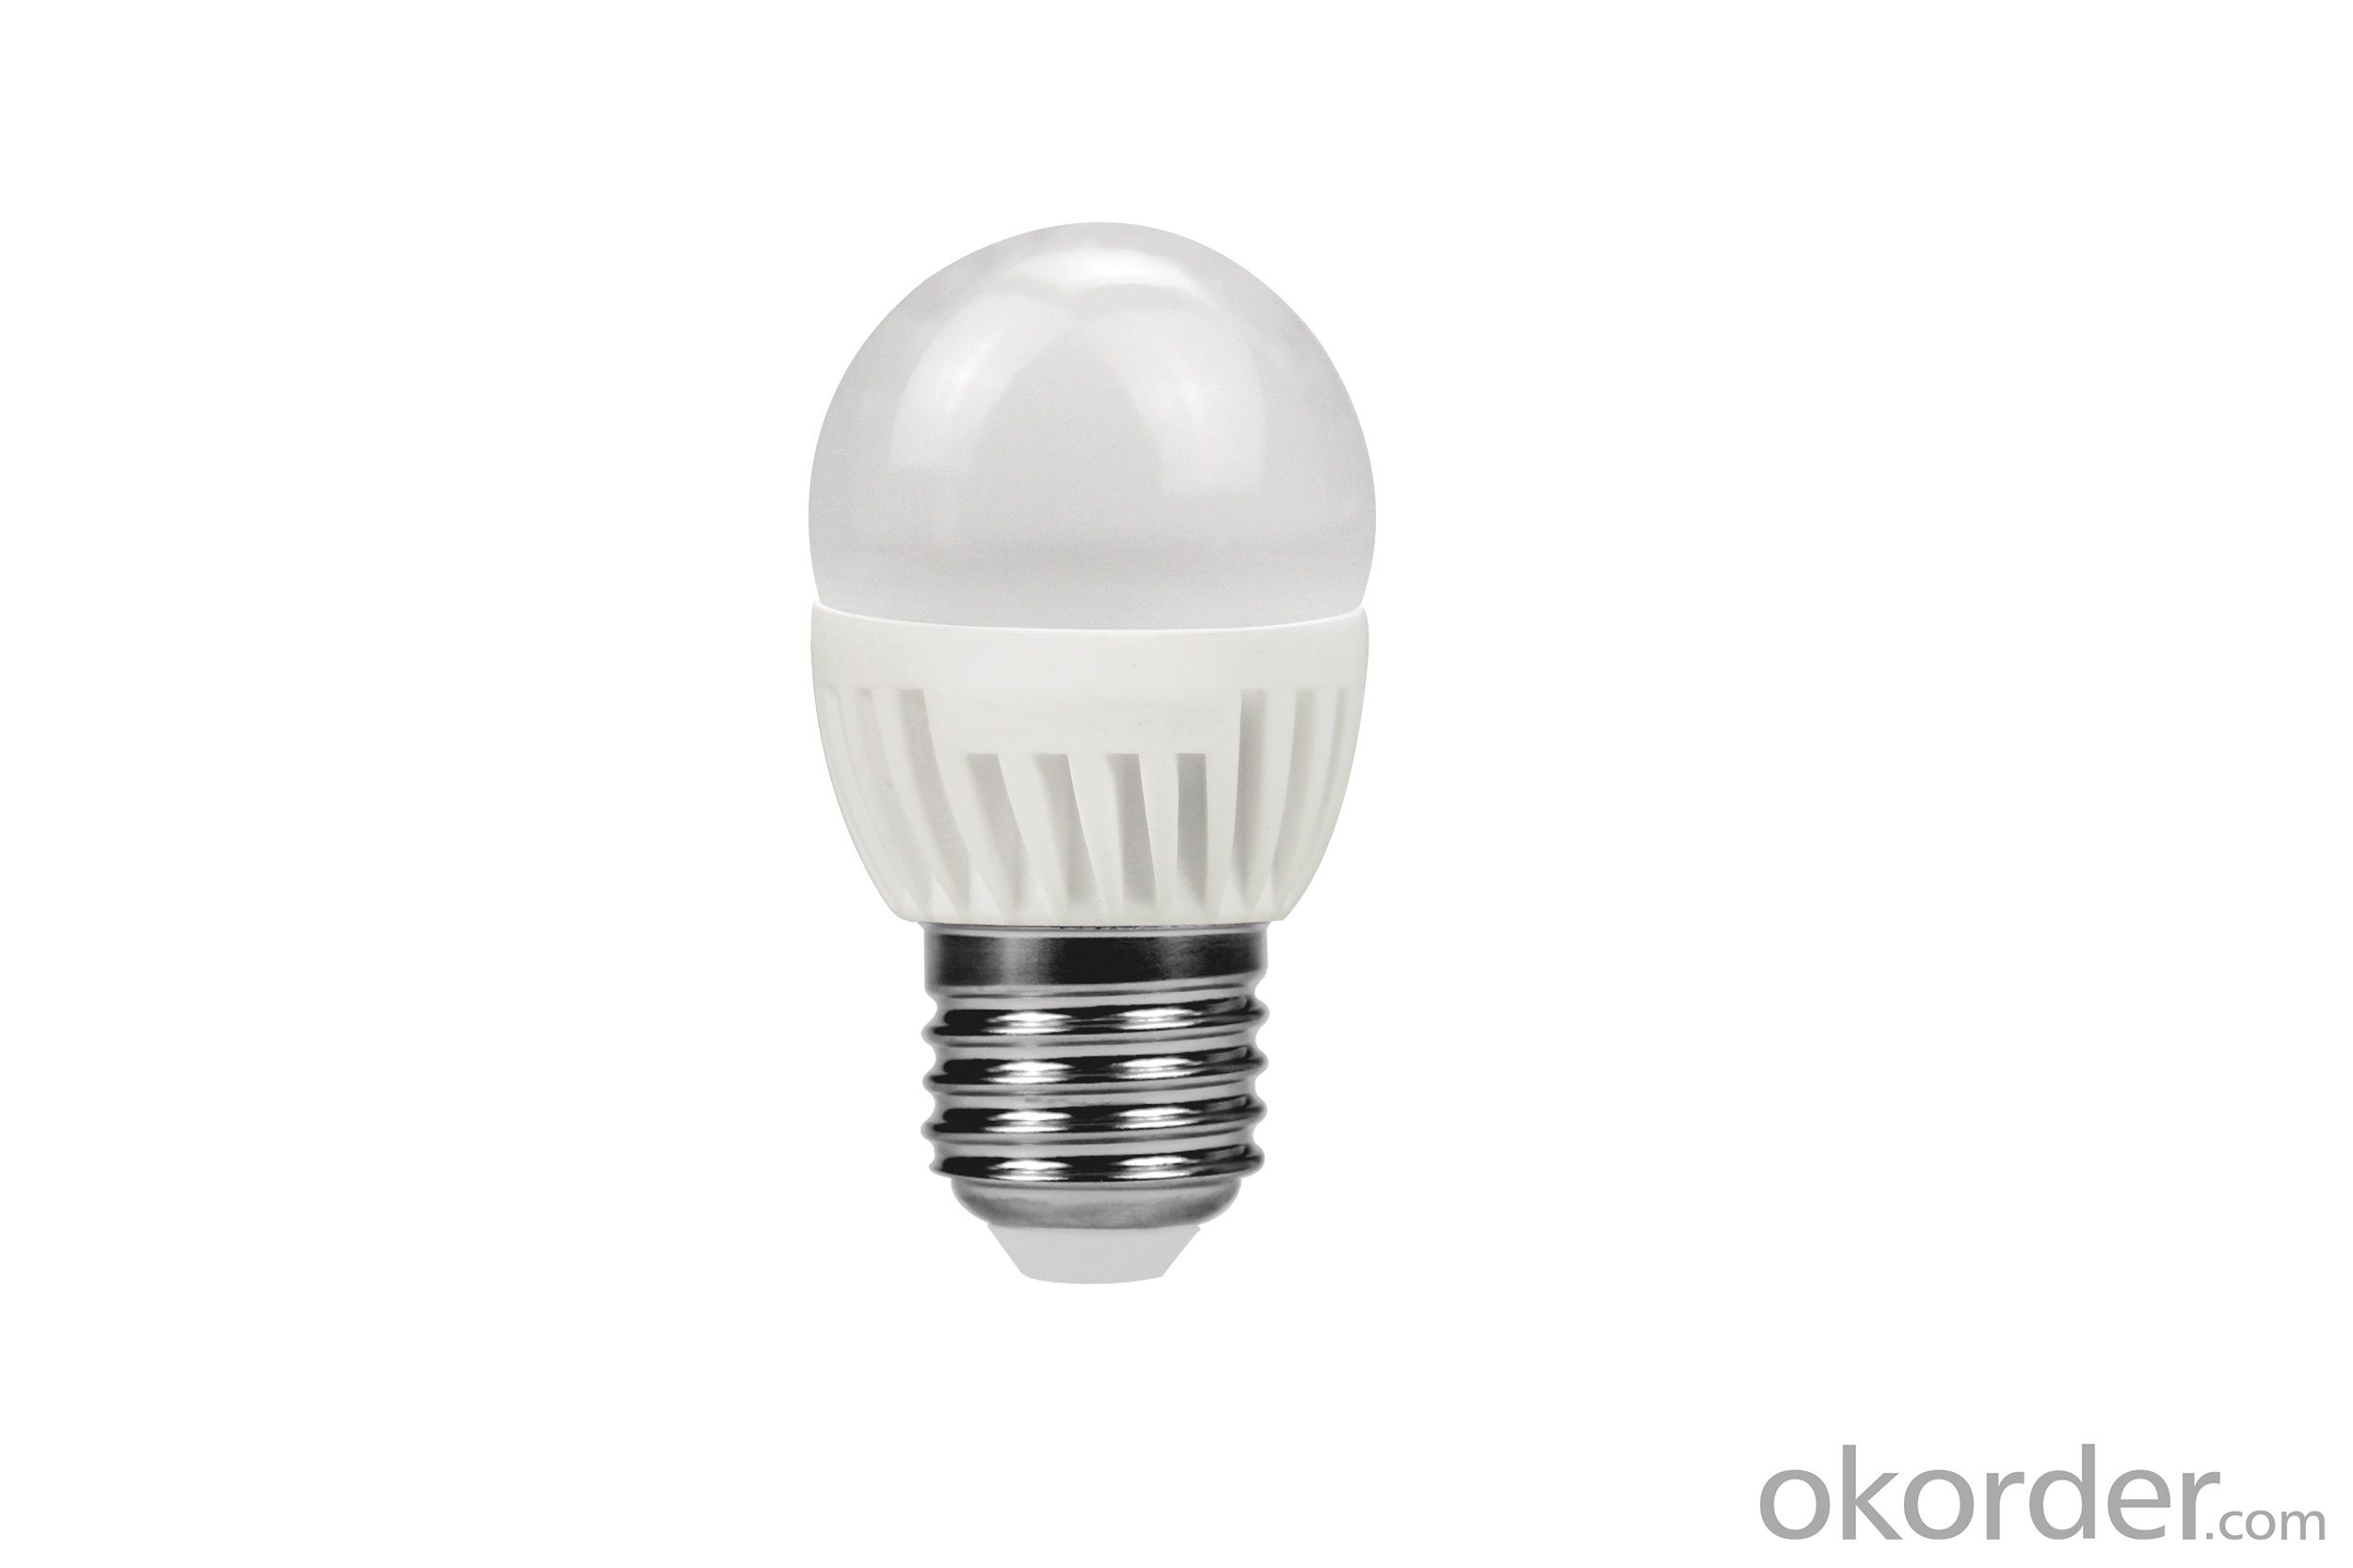 LED Bulb Light E27 3000k-4000K-5000K-6500k P45 9W 800 Lumen Non Dimmable